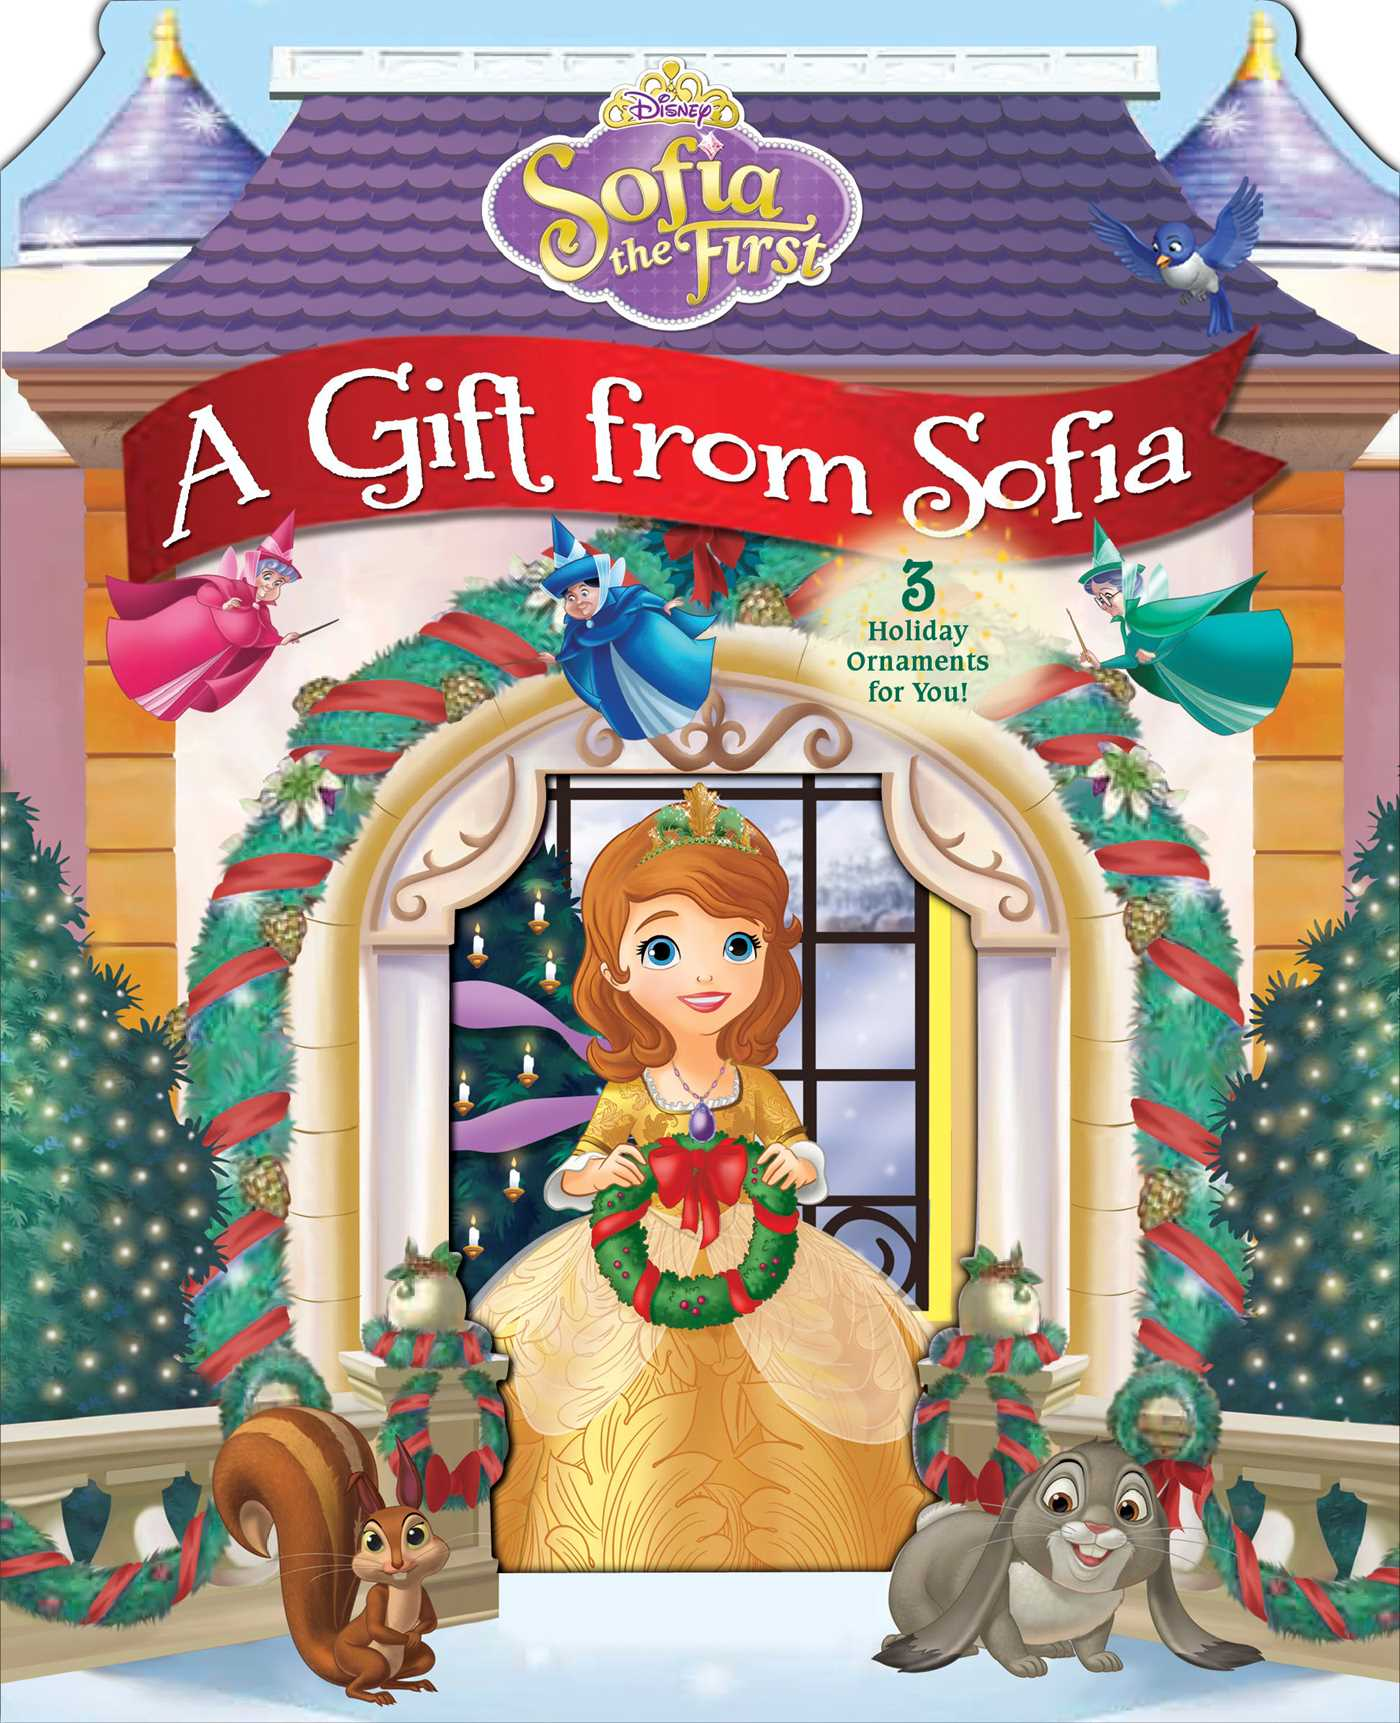 Disney-sofia-the-first-a-gift-from-sofia-9780794432003_hr